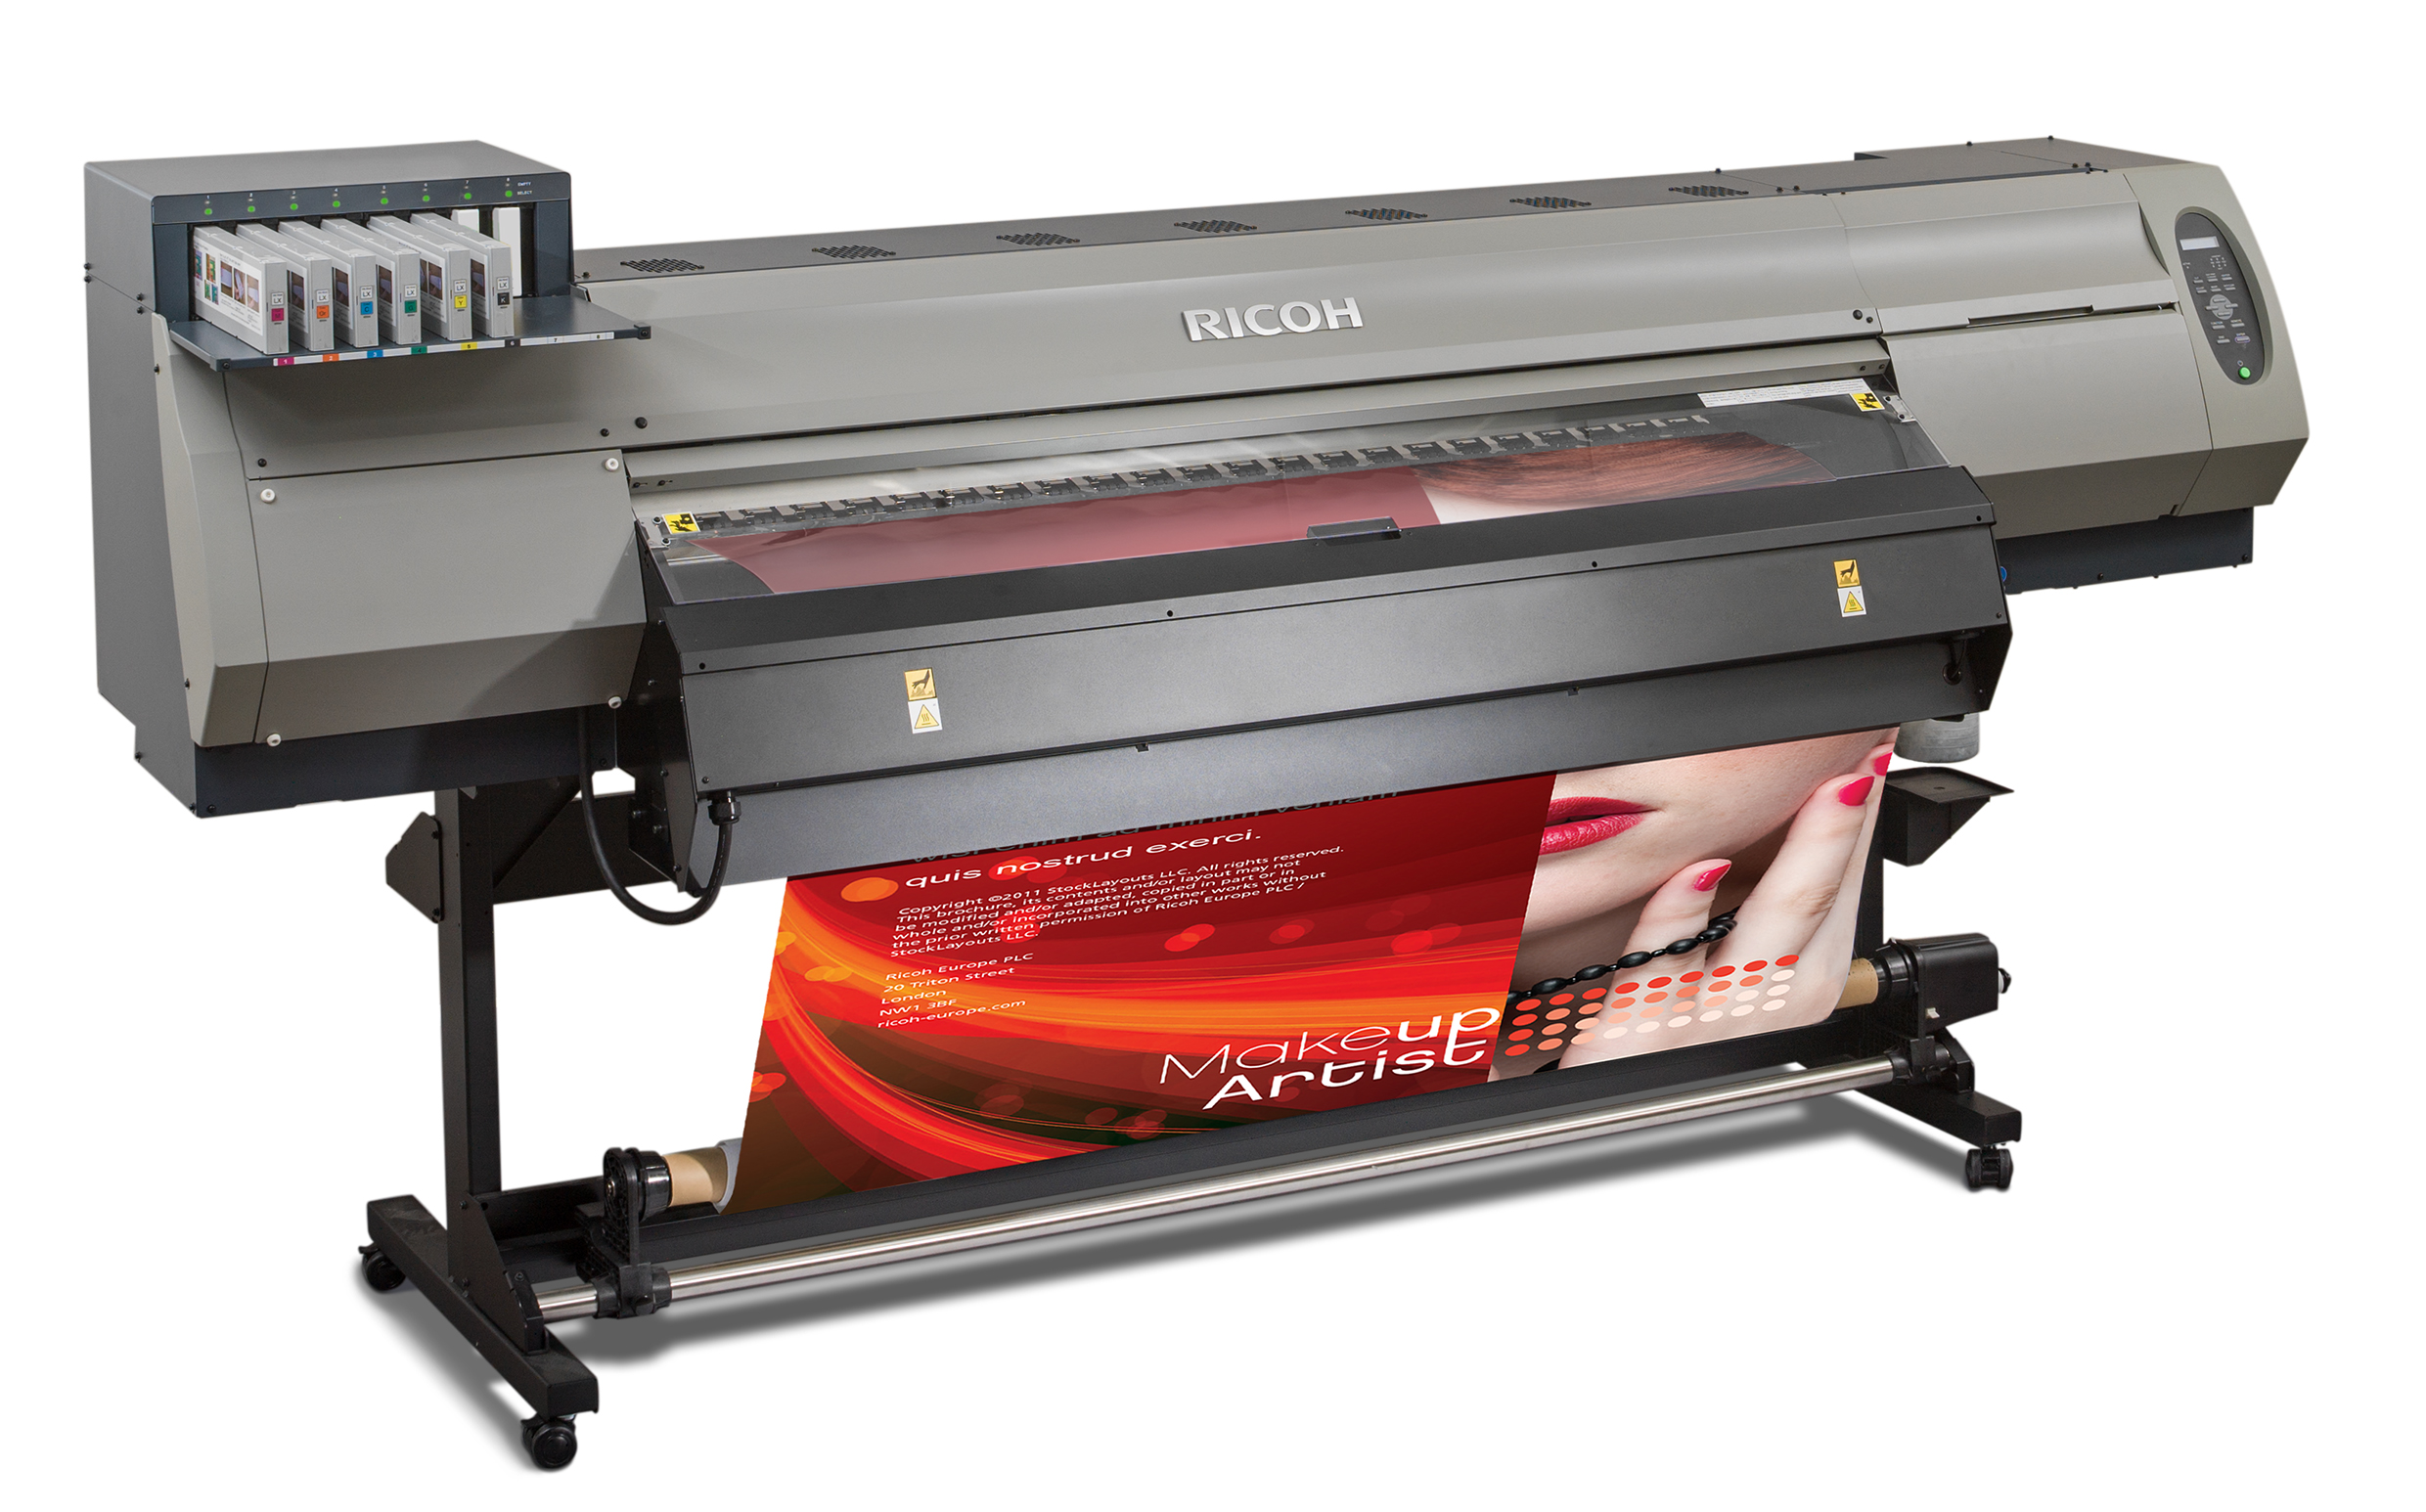 https://tryamm.ro/en/products/production-printers/wide-and-large-format-printers-en/